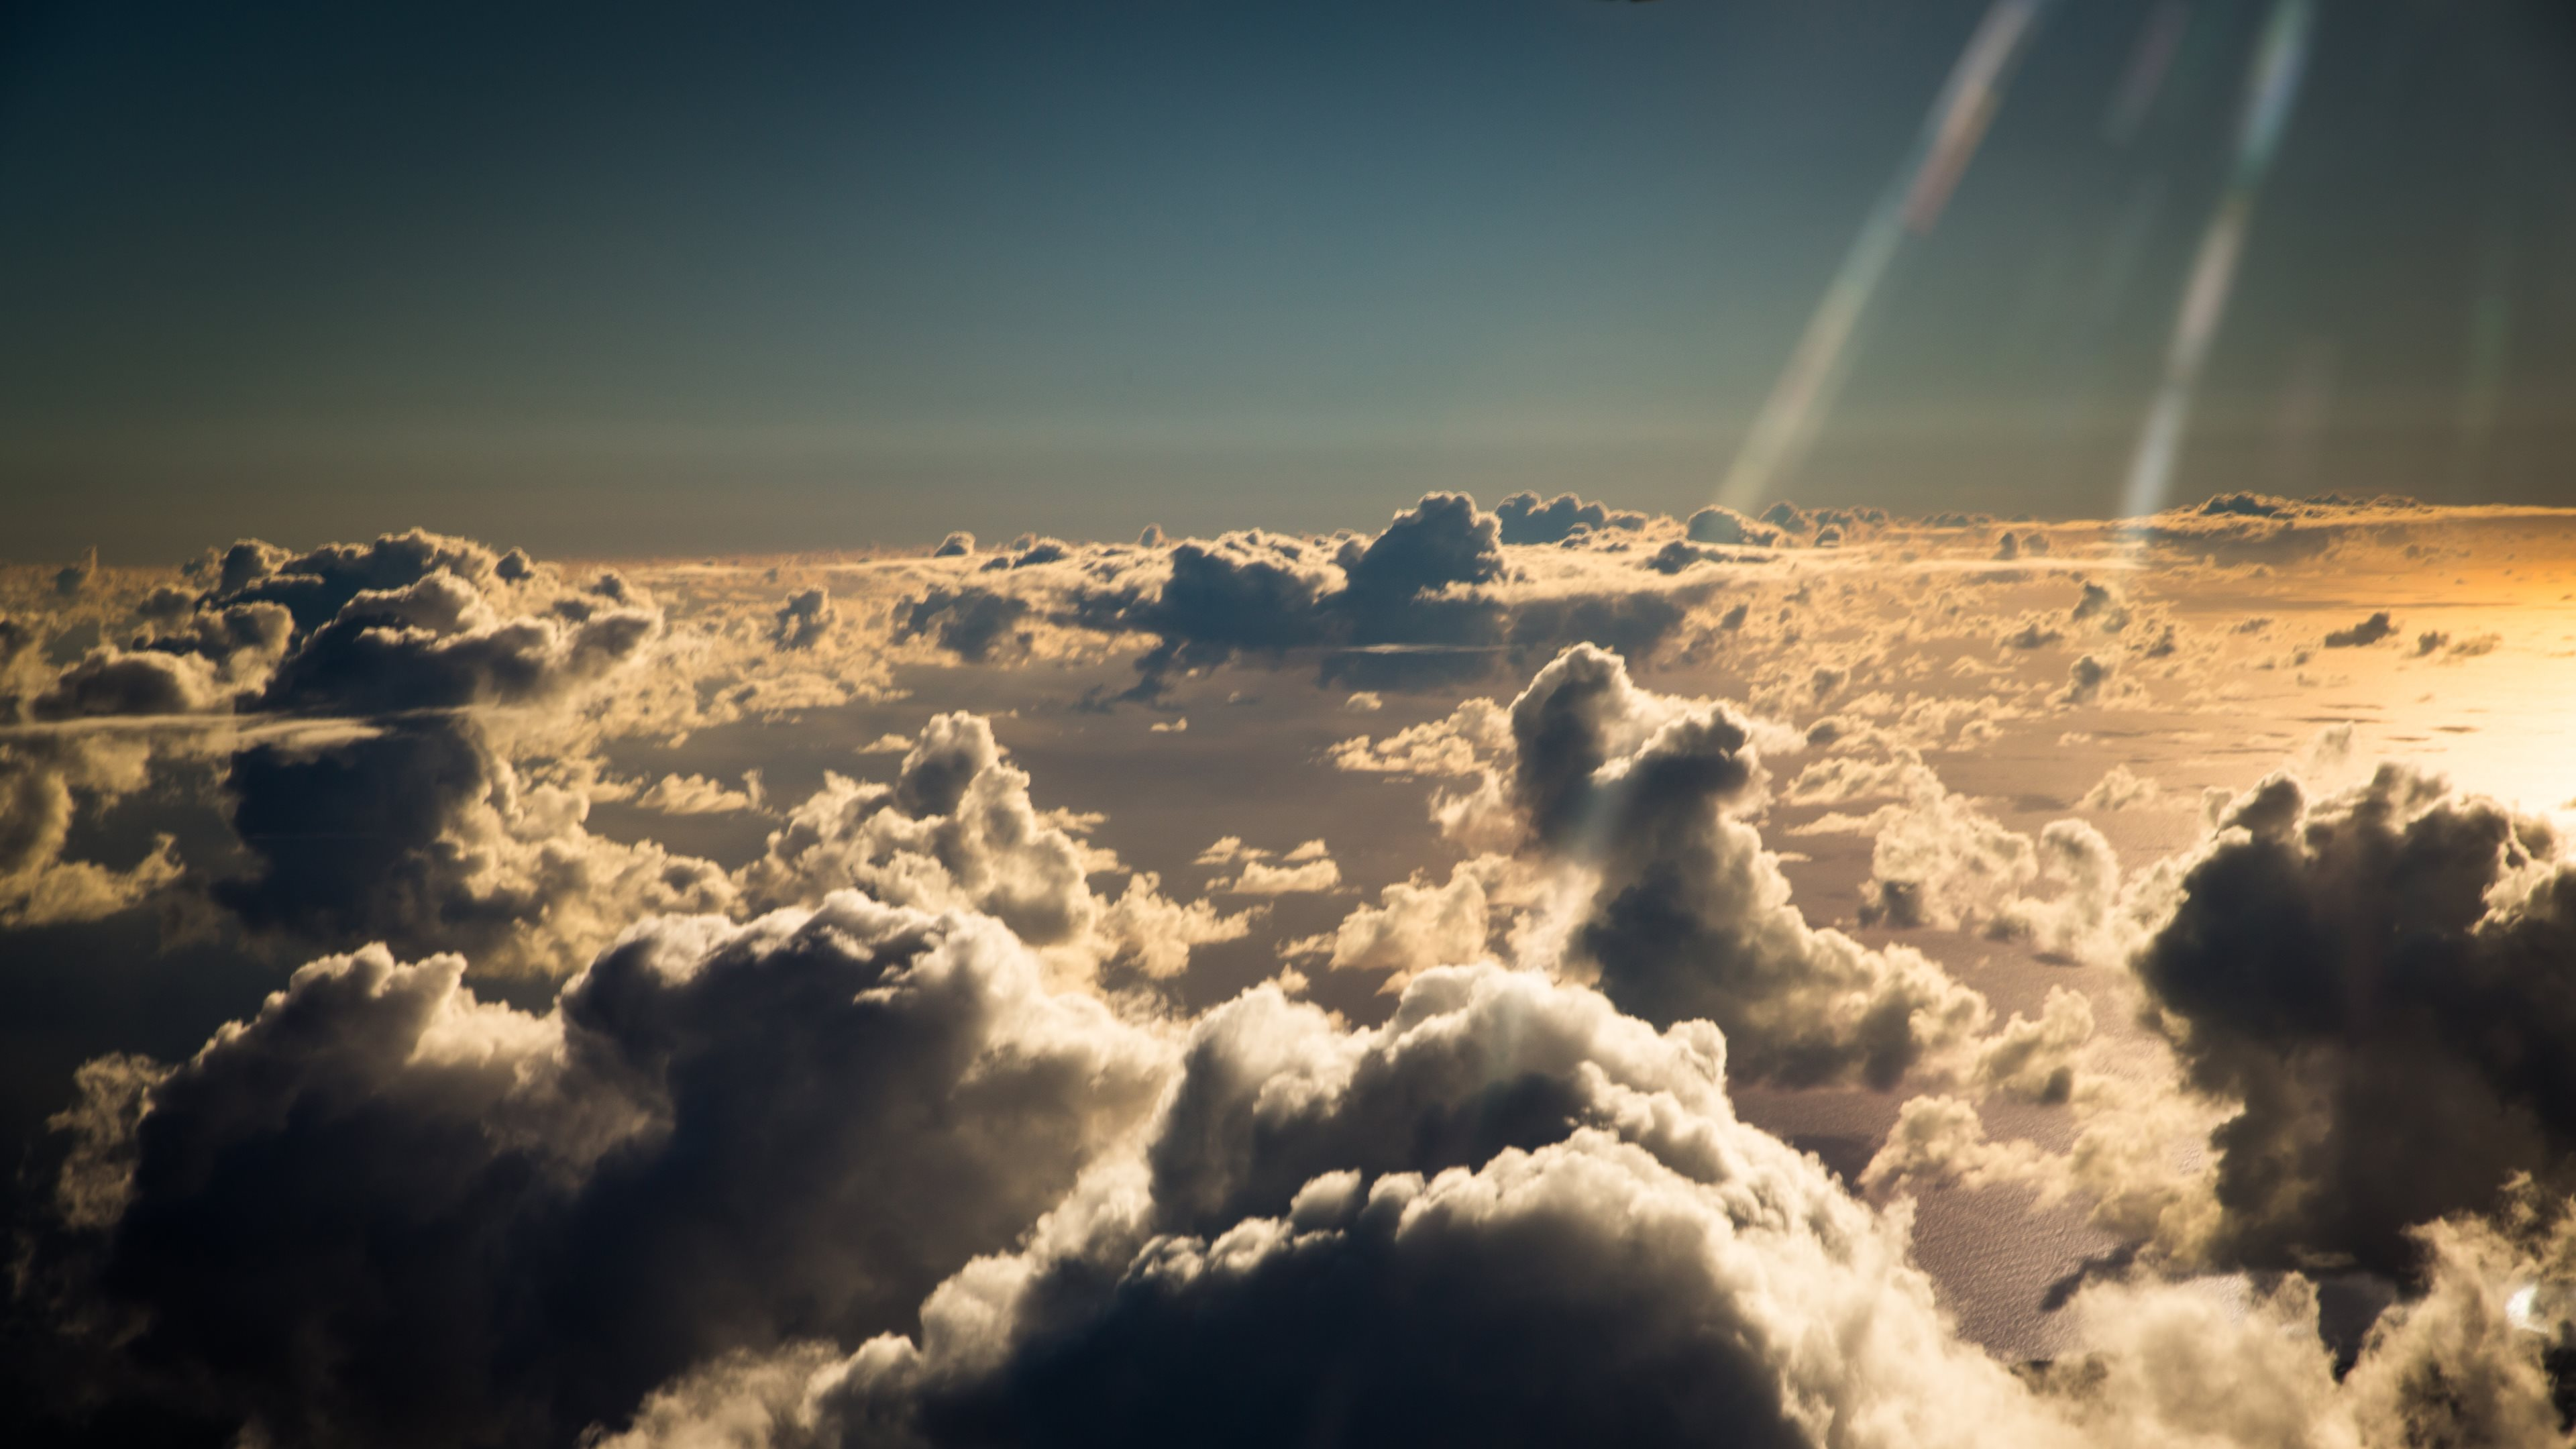 Sunrise cloud 4k ultra hd wallpaper and background image for Cloud wallpaper